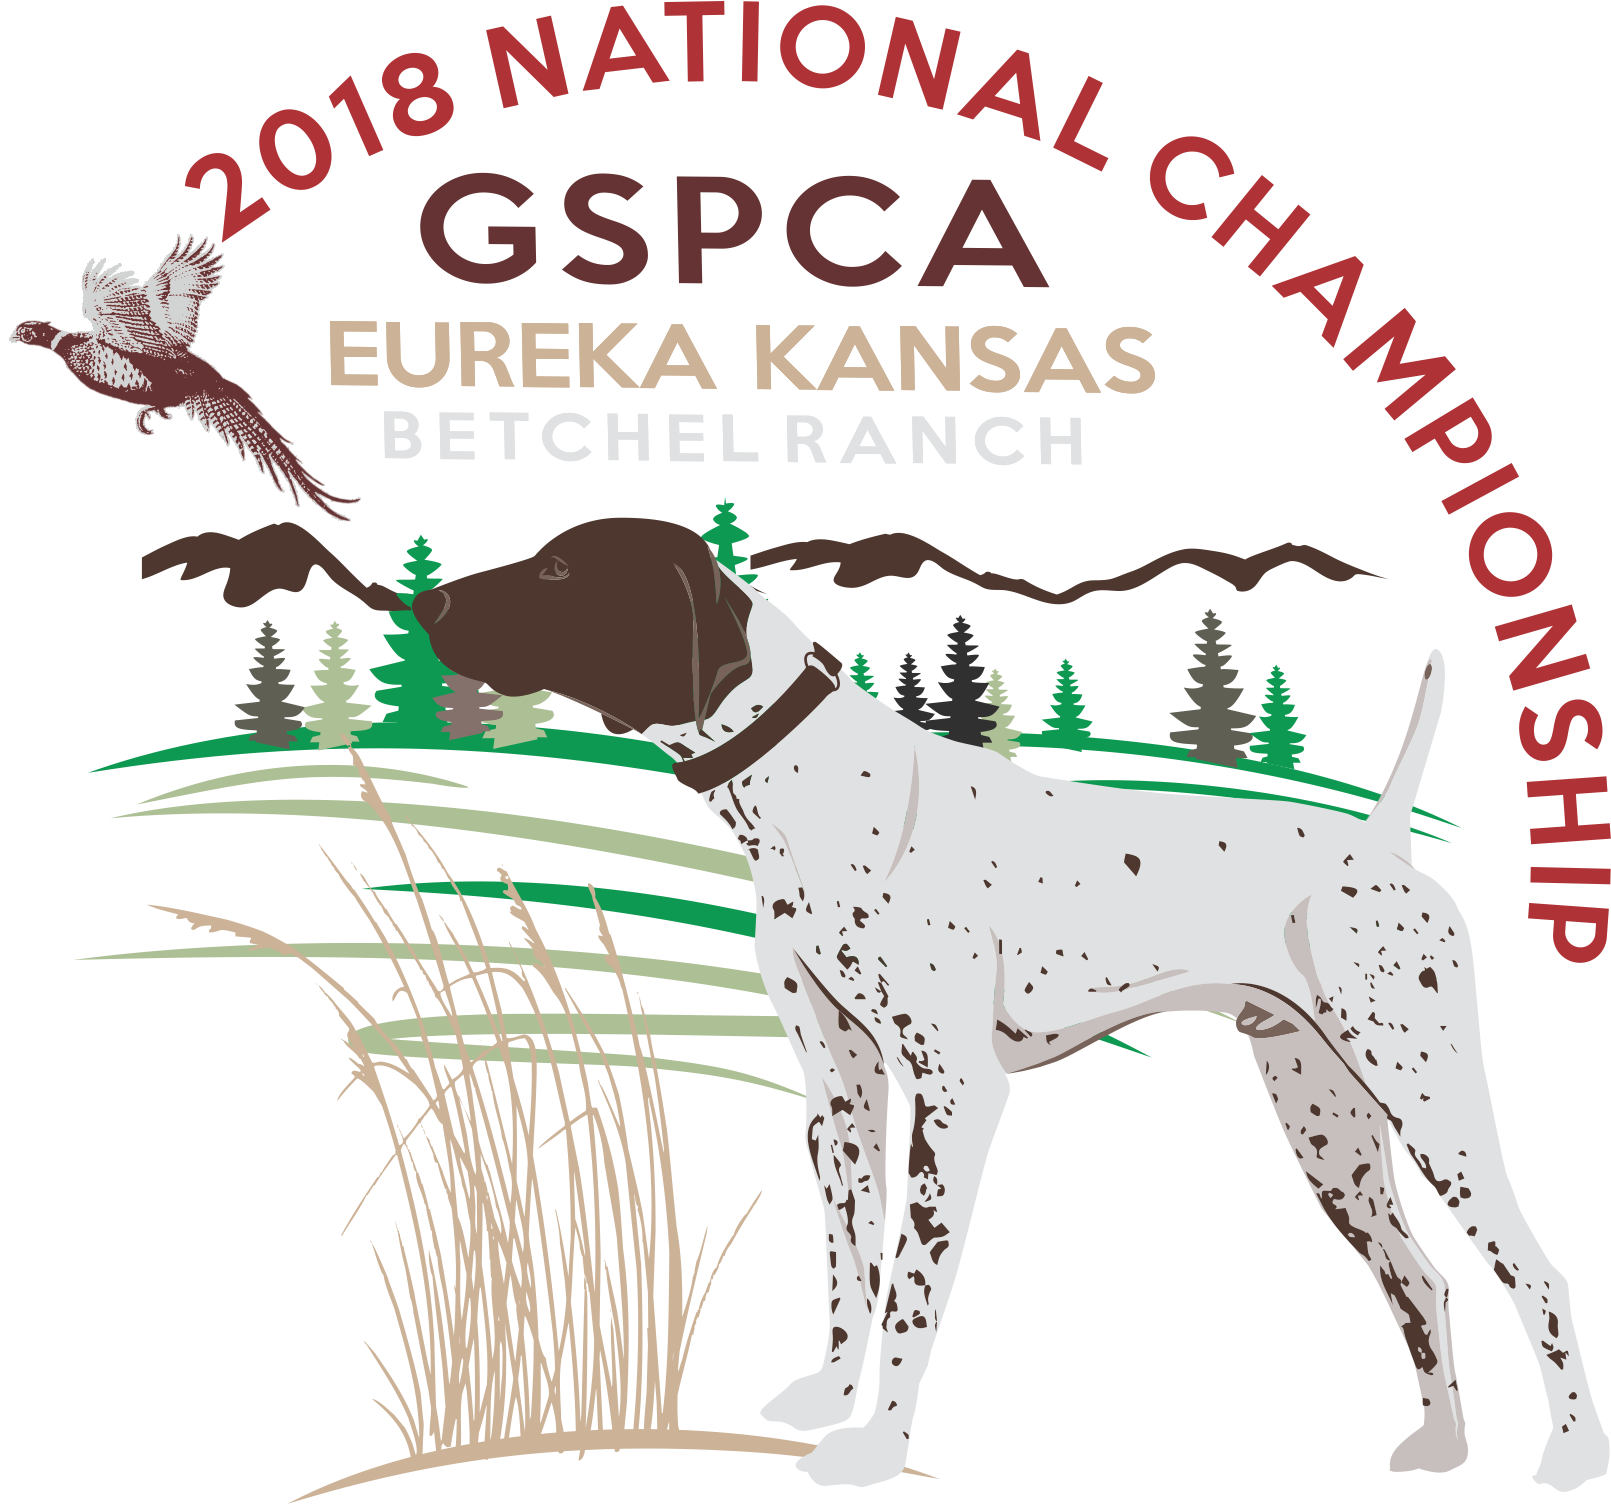 gspca-2018-apparel-logo-final-edited.png